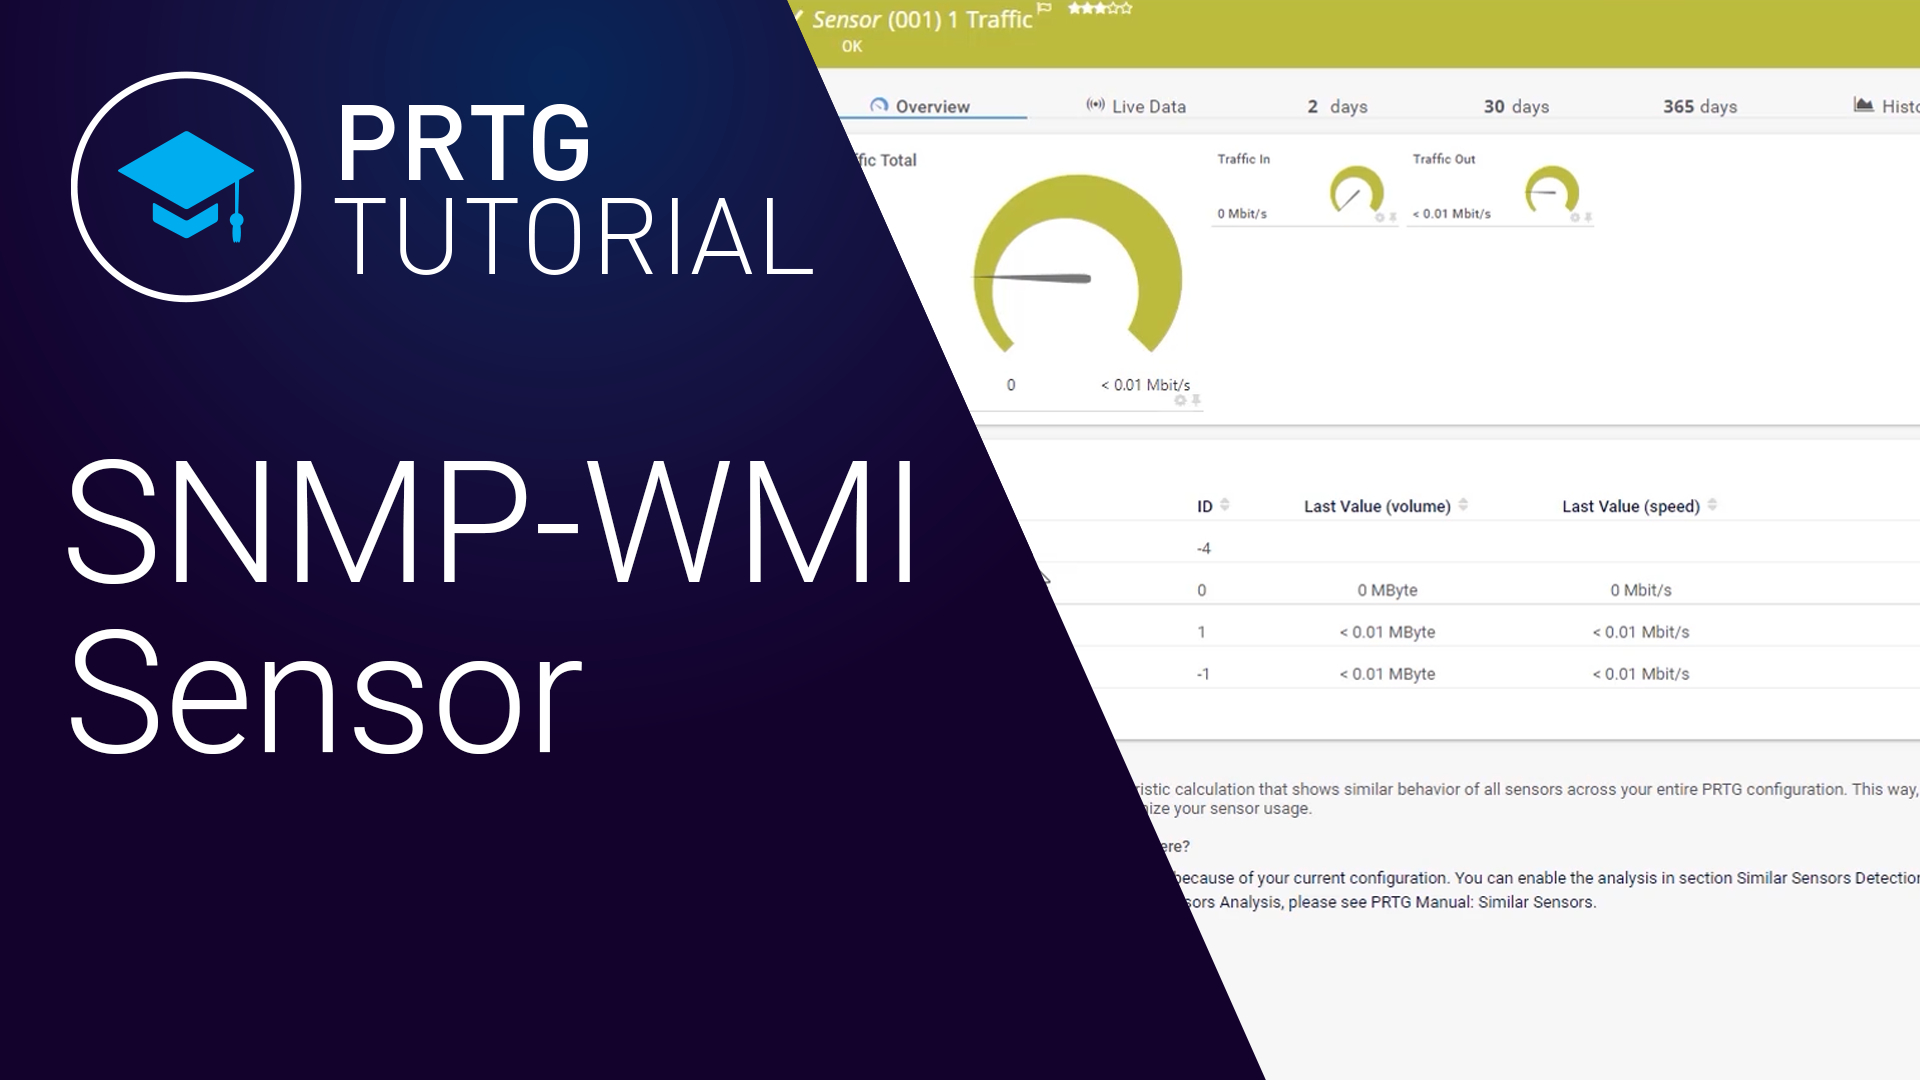 Videos With Prtg Report Templates